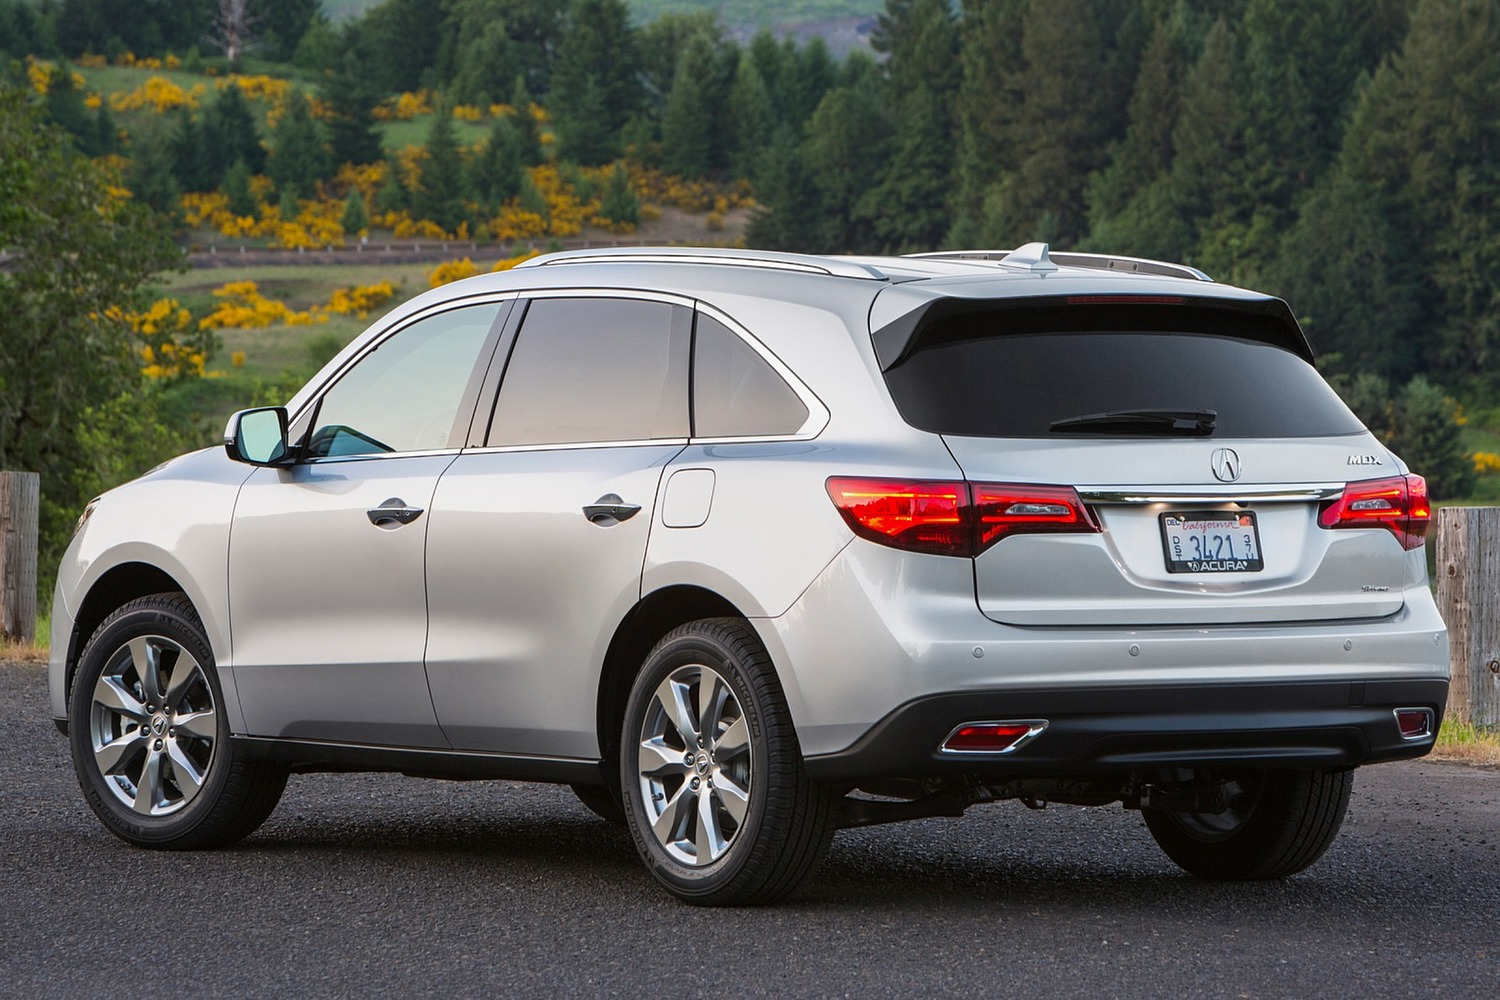 2016 Acura MDX SH-AWD w/Technology, Entertainment and AcuraWatch Plus Packages 4dr SUV Exterior Shown